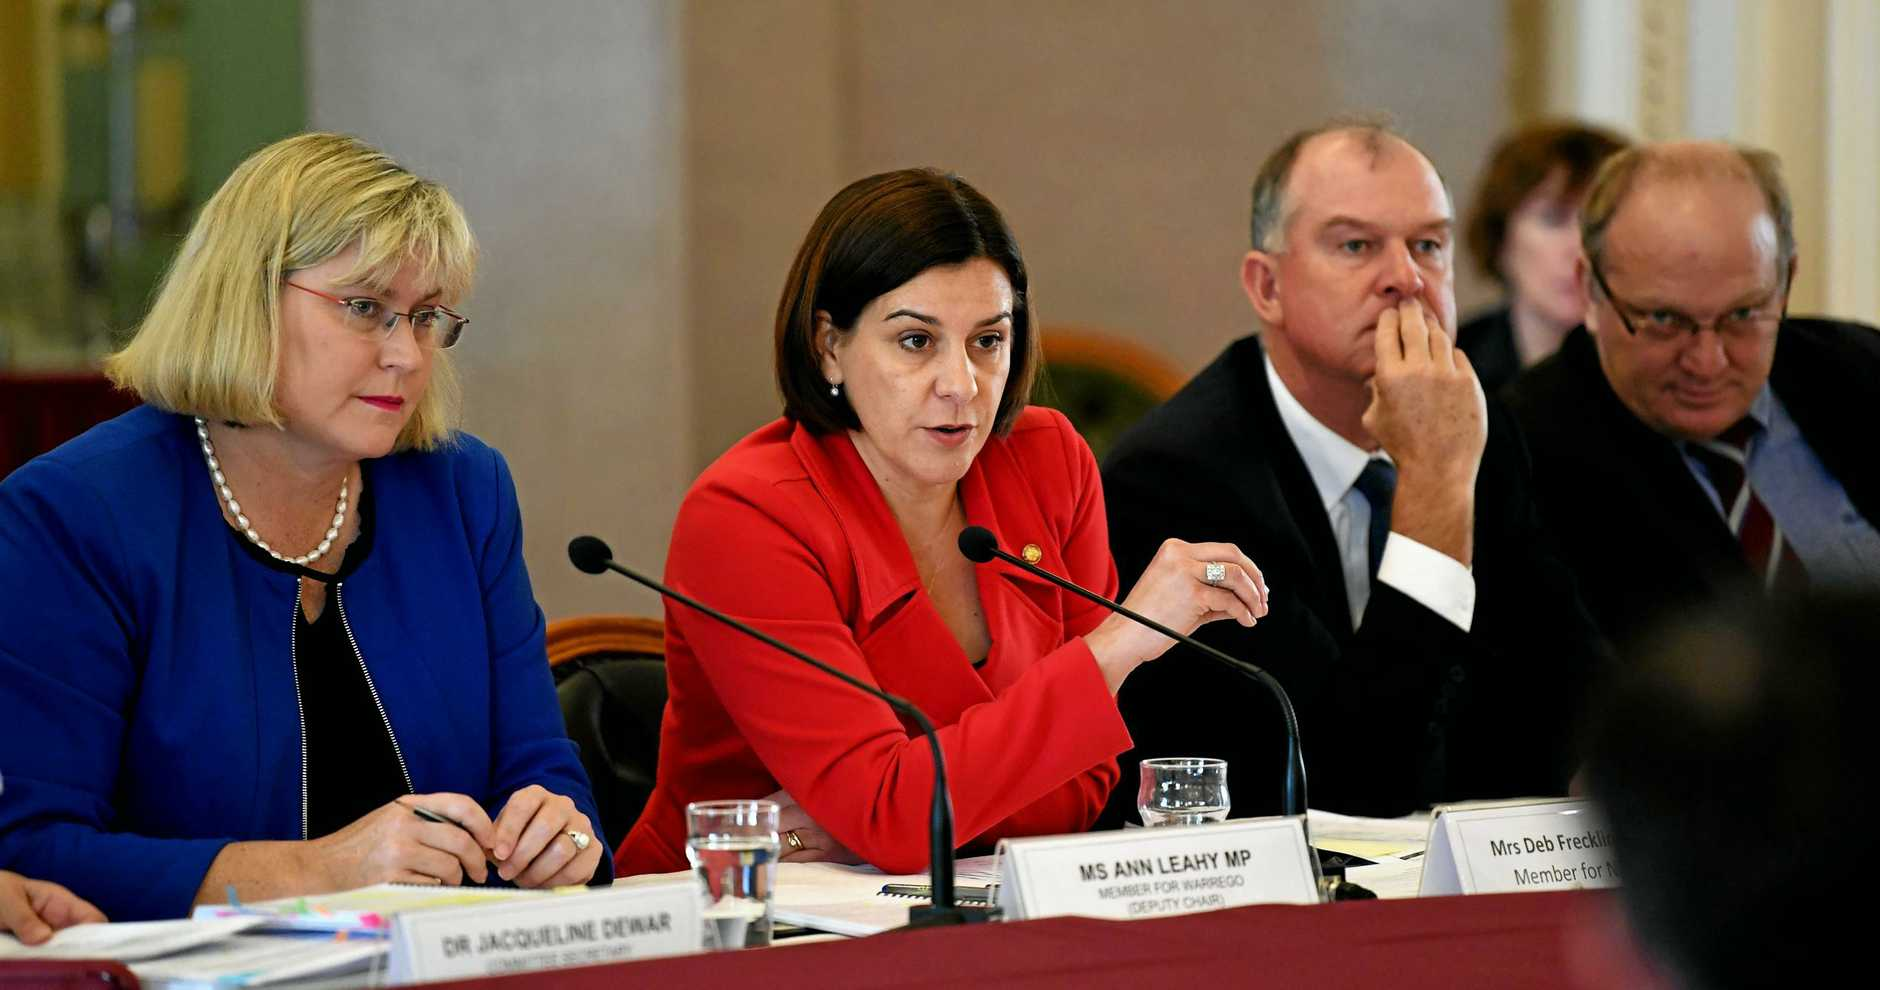 Deputy Opposition leader Deb Frecklington (centre) accused State Development Minister Anthony Lynham of under-funding councils in LNP seats.